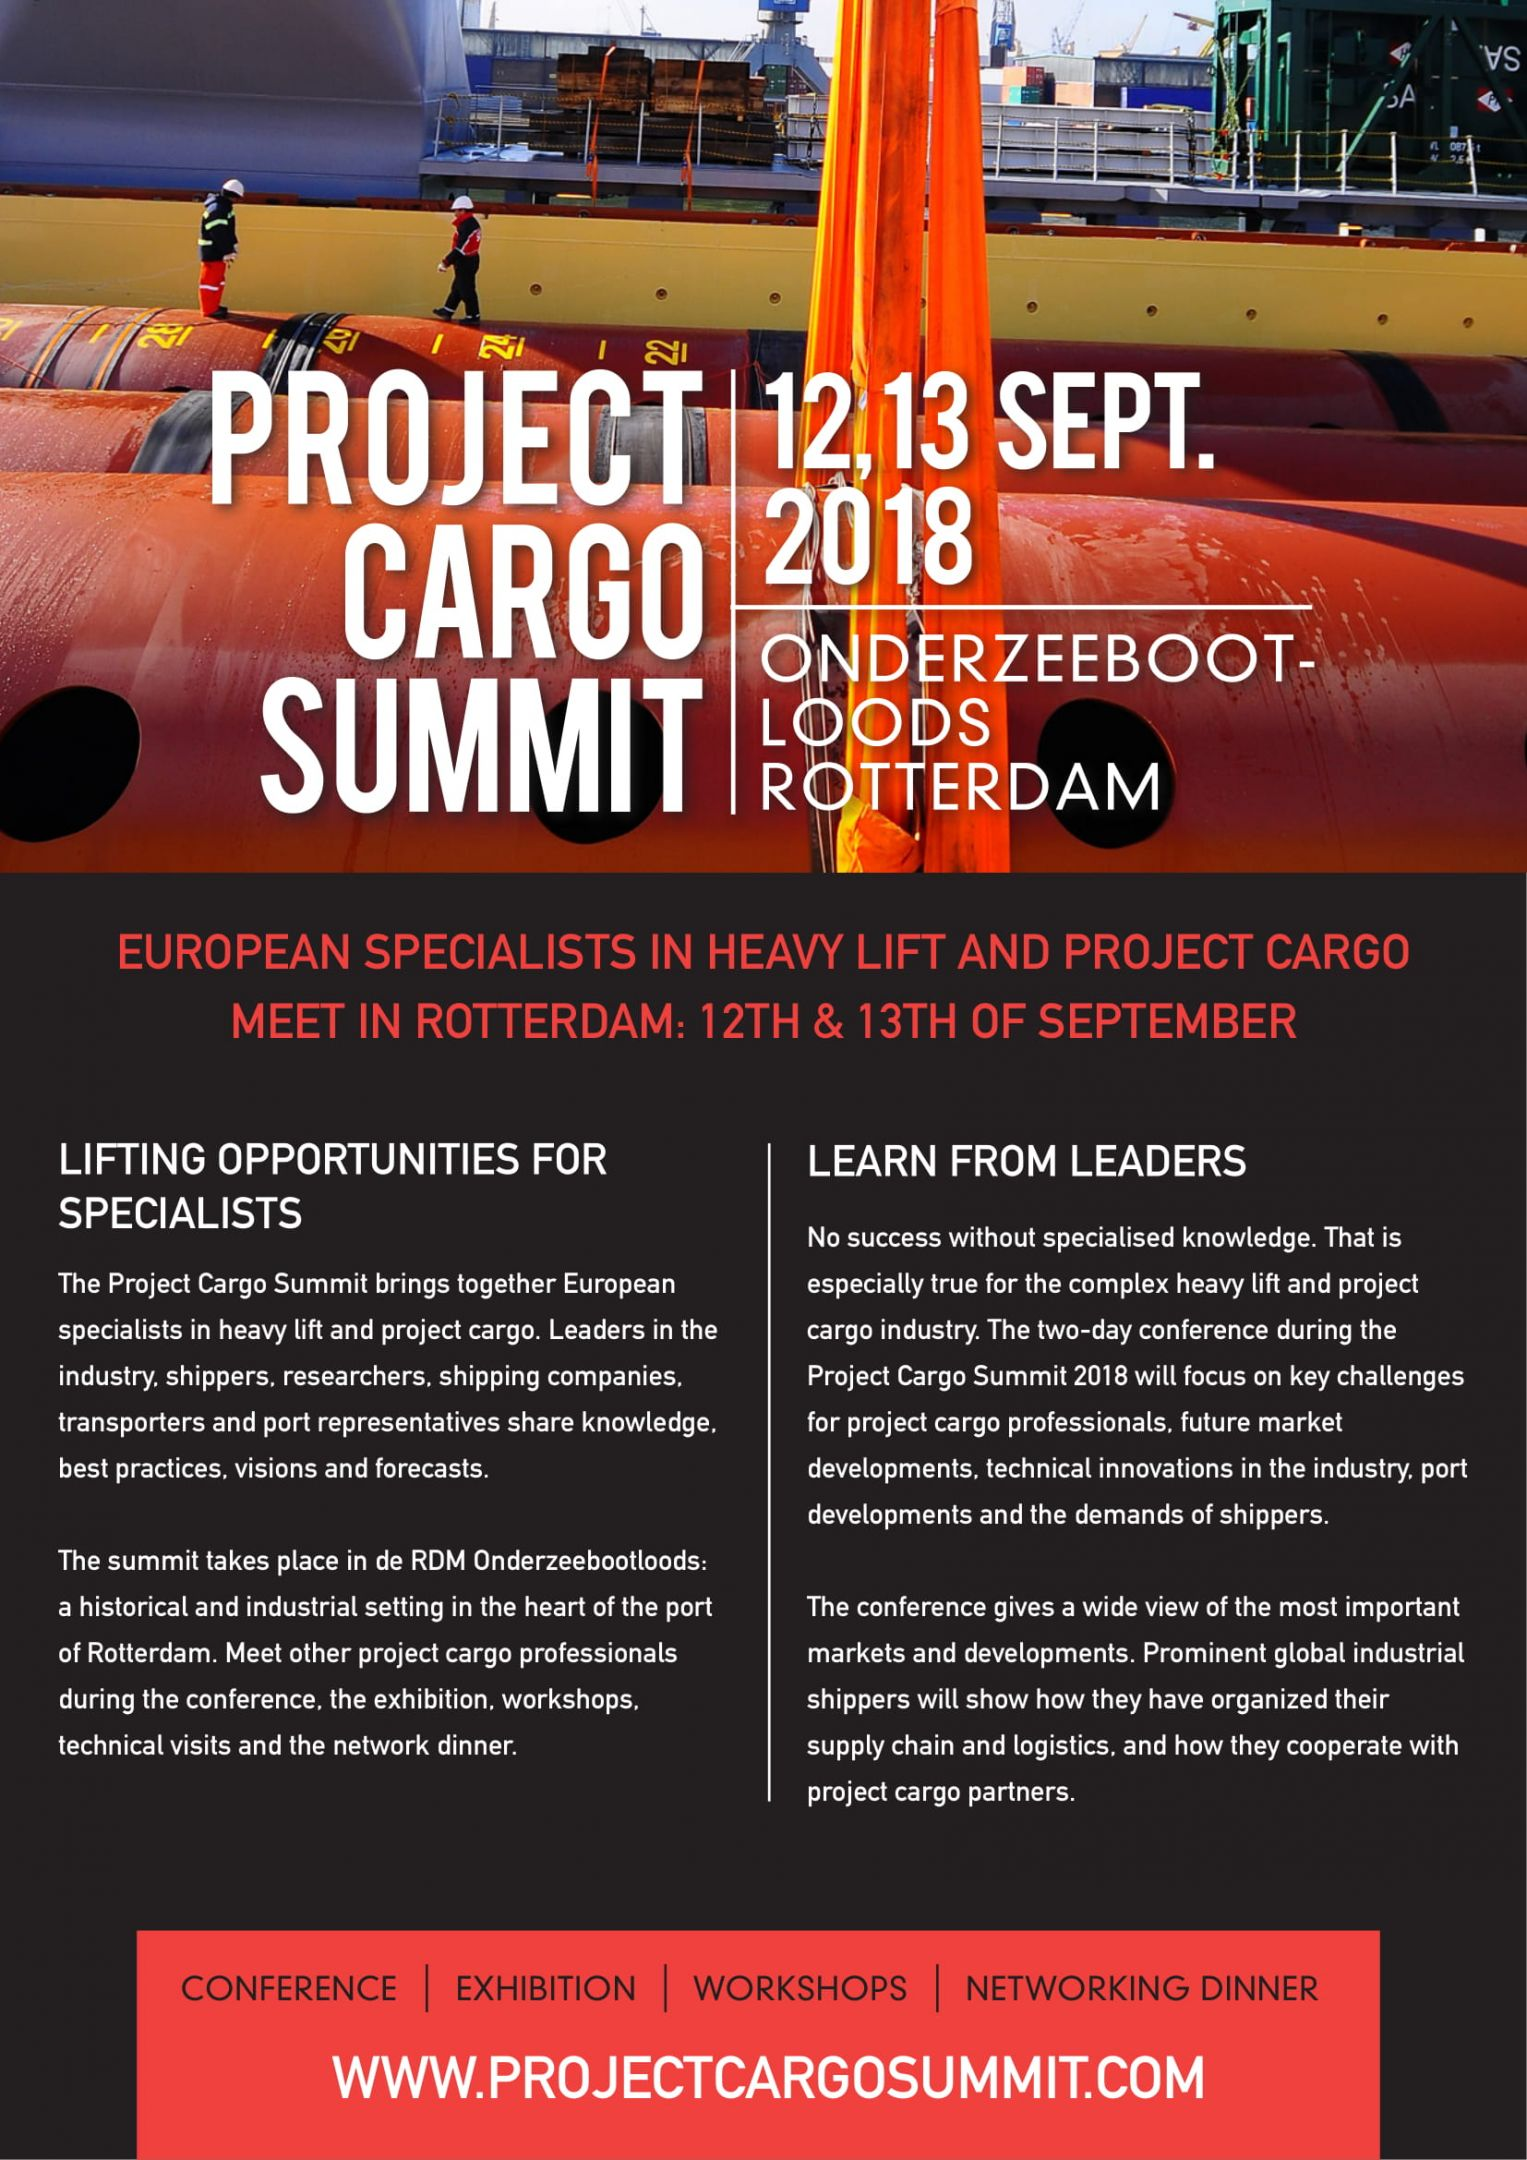 Broekman Logistics is participating in the Project Cargo Summit 2018